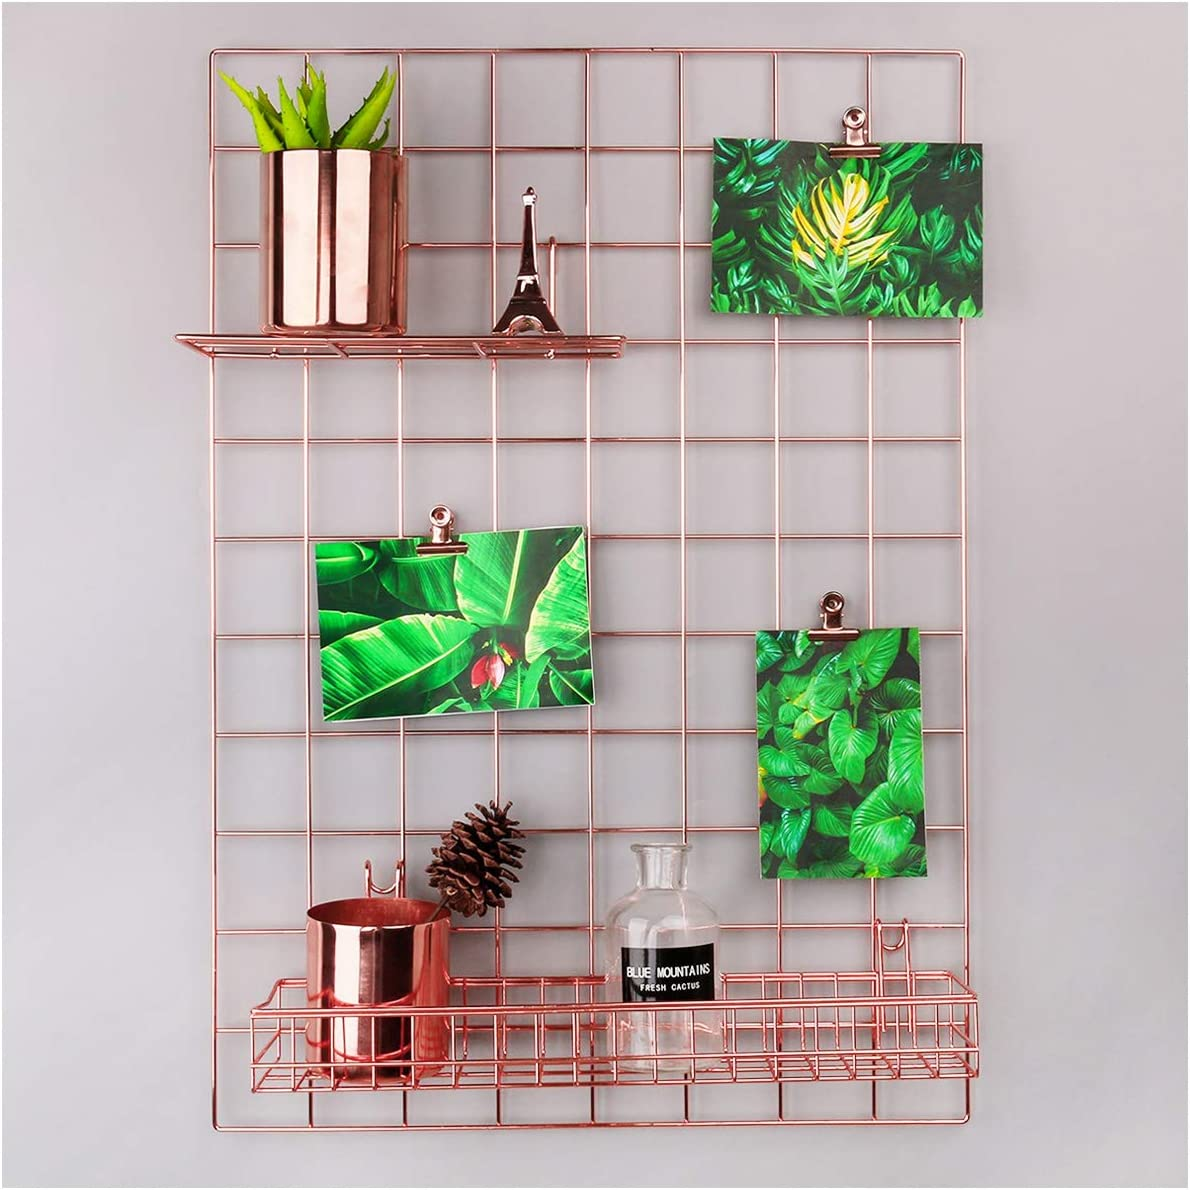 SIMMER STONE Rose Gold Wall Grid Panel for Photo Hanging Display & Wall Decoration Organizer, Multi-Functional Wall Storage Display Grid, 5 Clips & 4 Nails Offered, Set of 1, 17.7